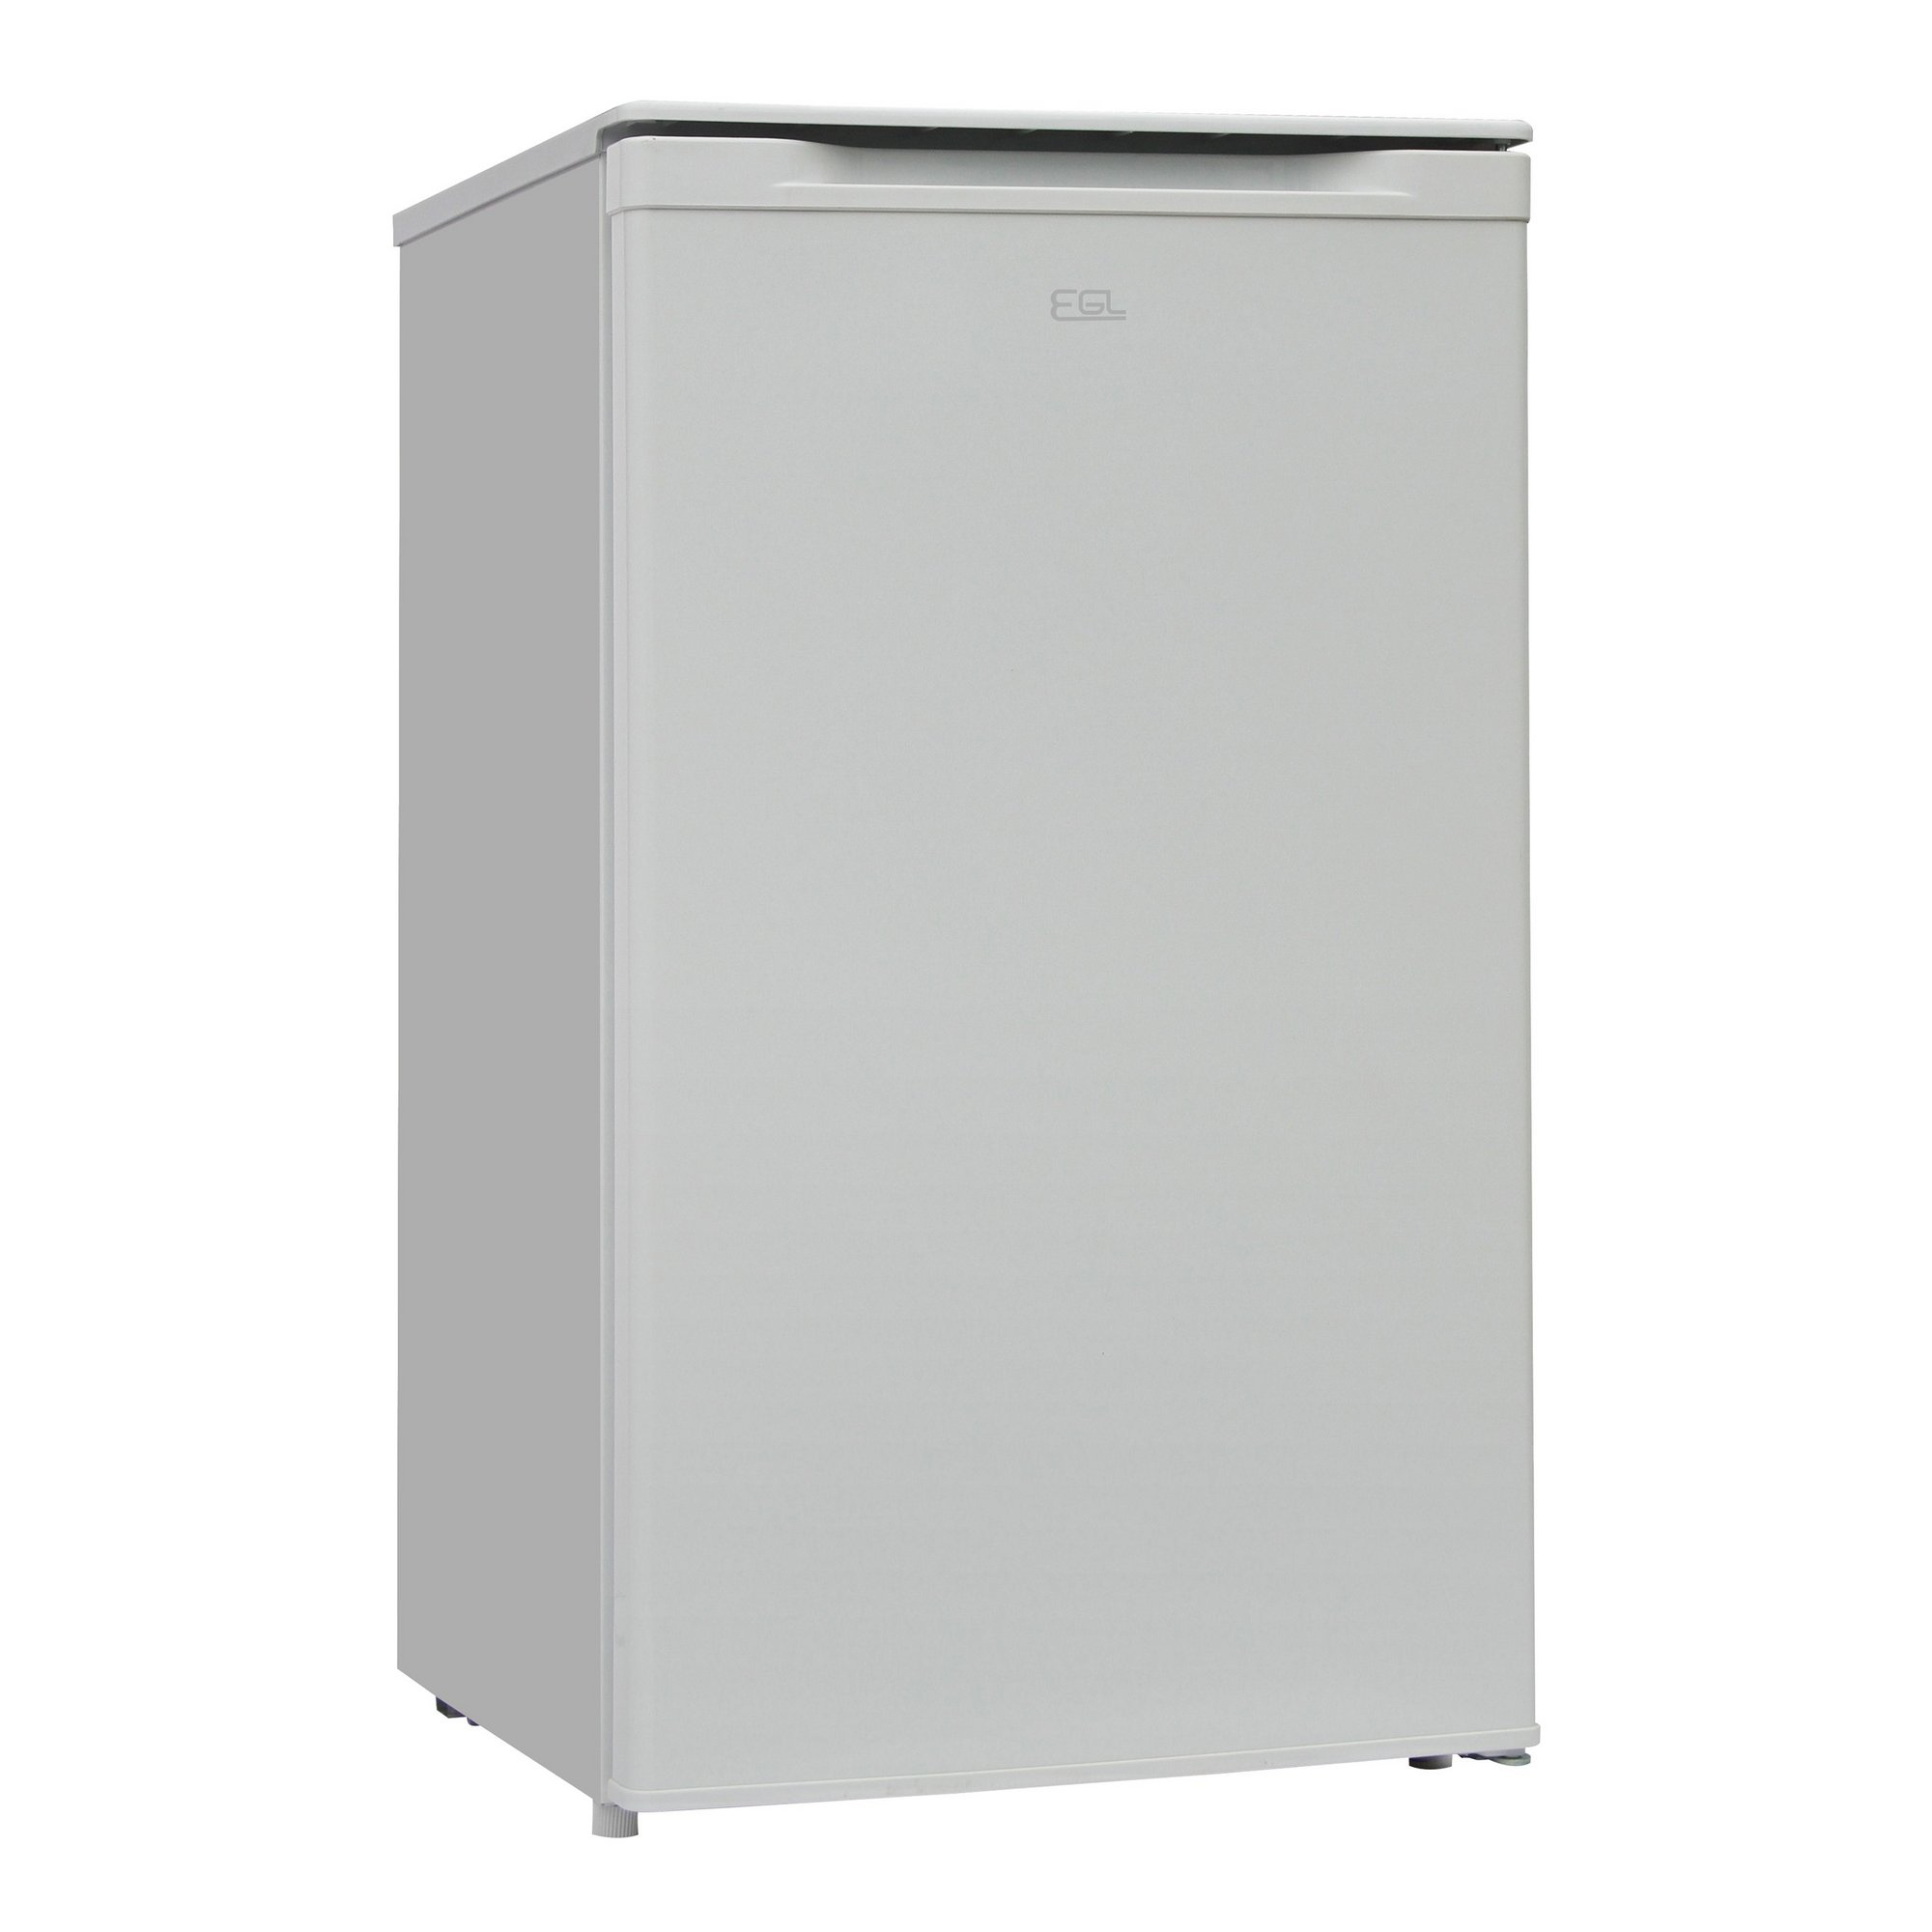 Image of 75 Litre Under Counter Freezer